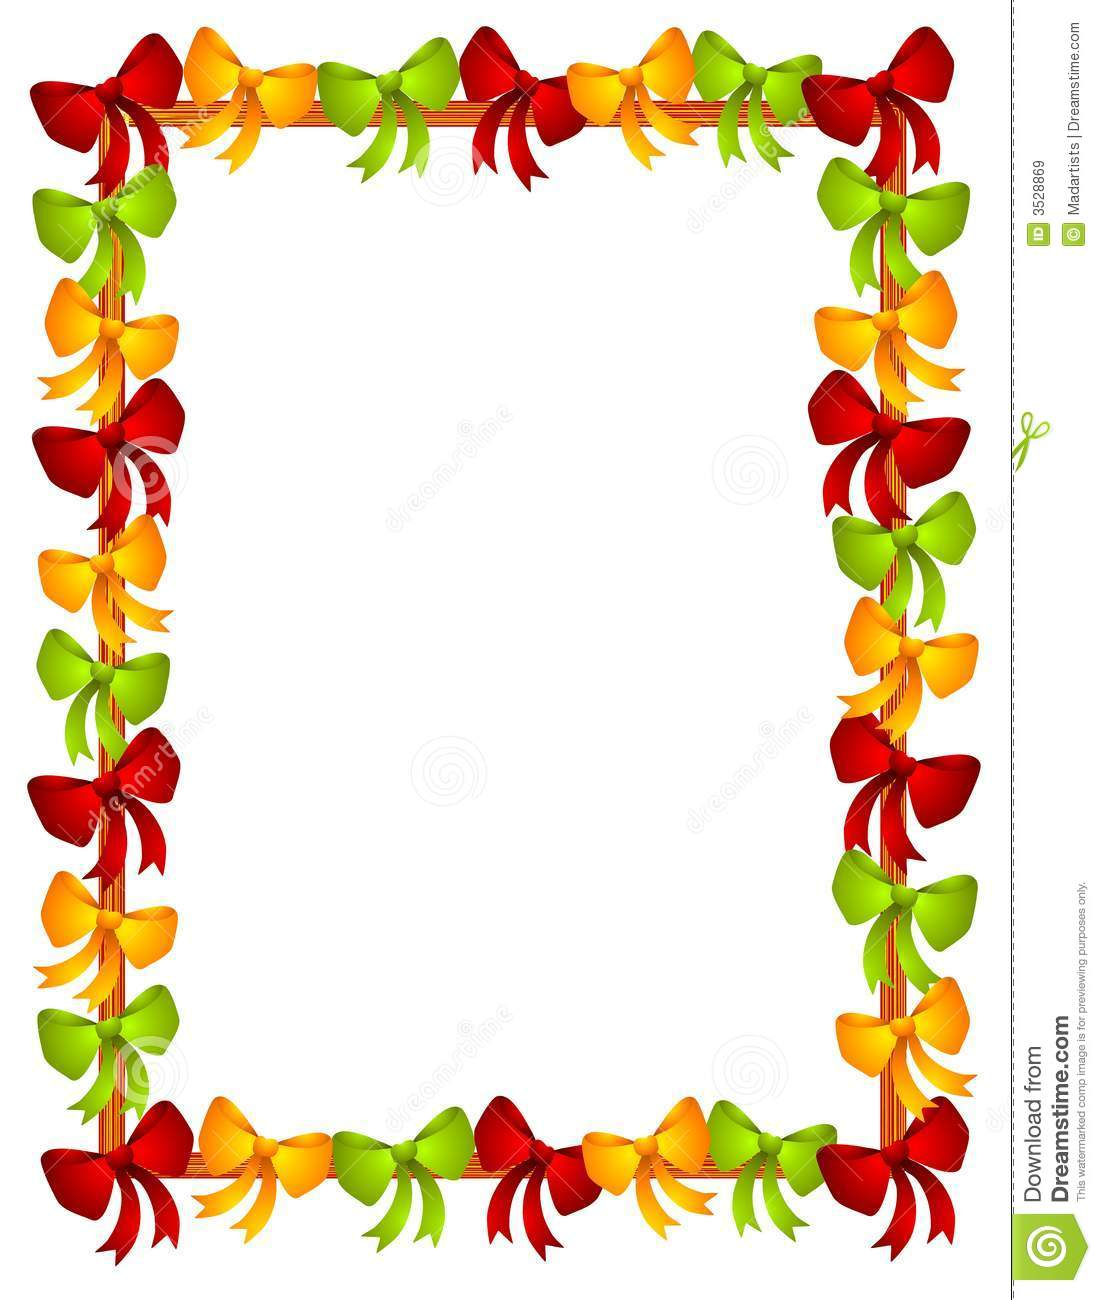 Printable Clipart Borders   Free download best Printable Clipart ...